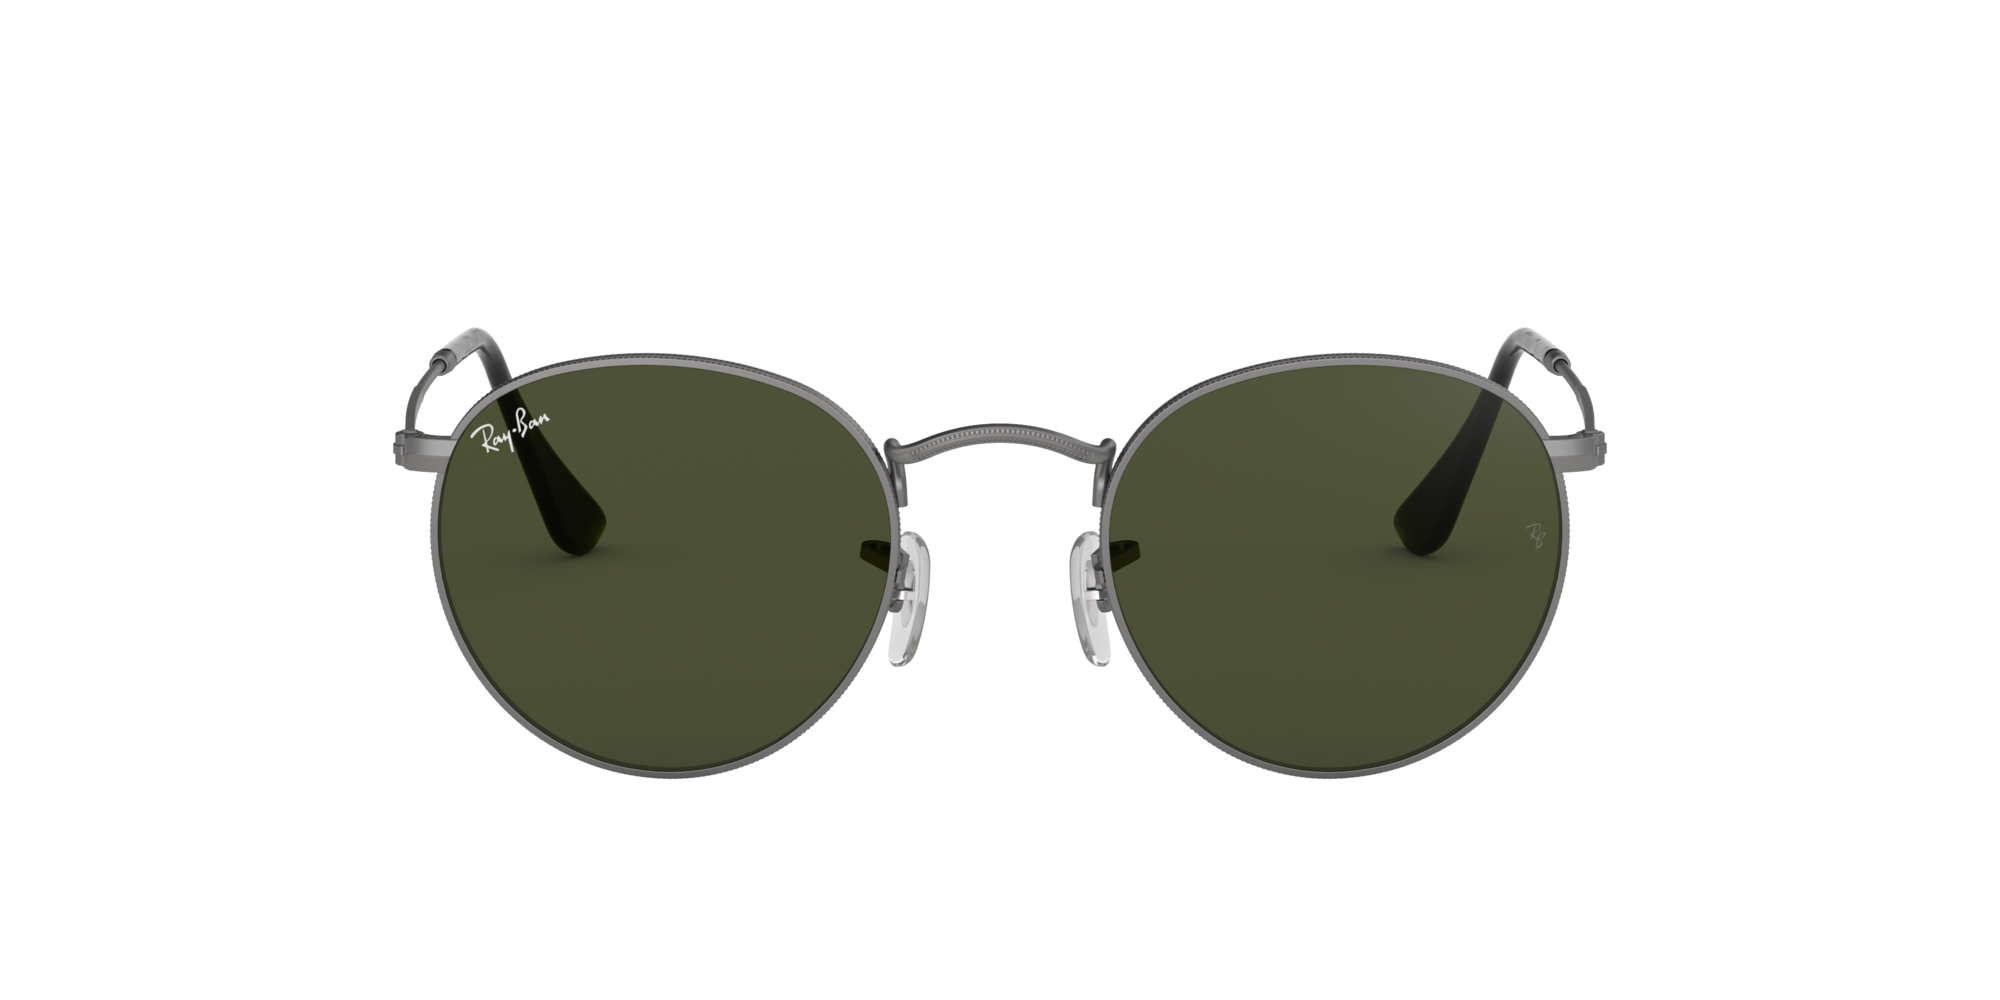 Image for RB3447 50 ROUND METAL from LensCrafters | Glasses, Prescription Glasses Online, Eyewear